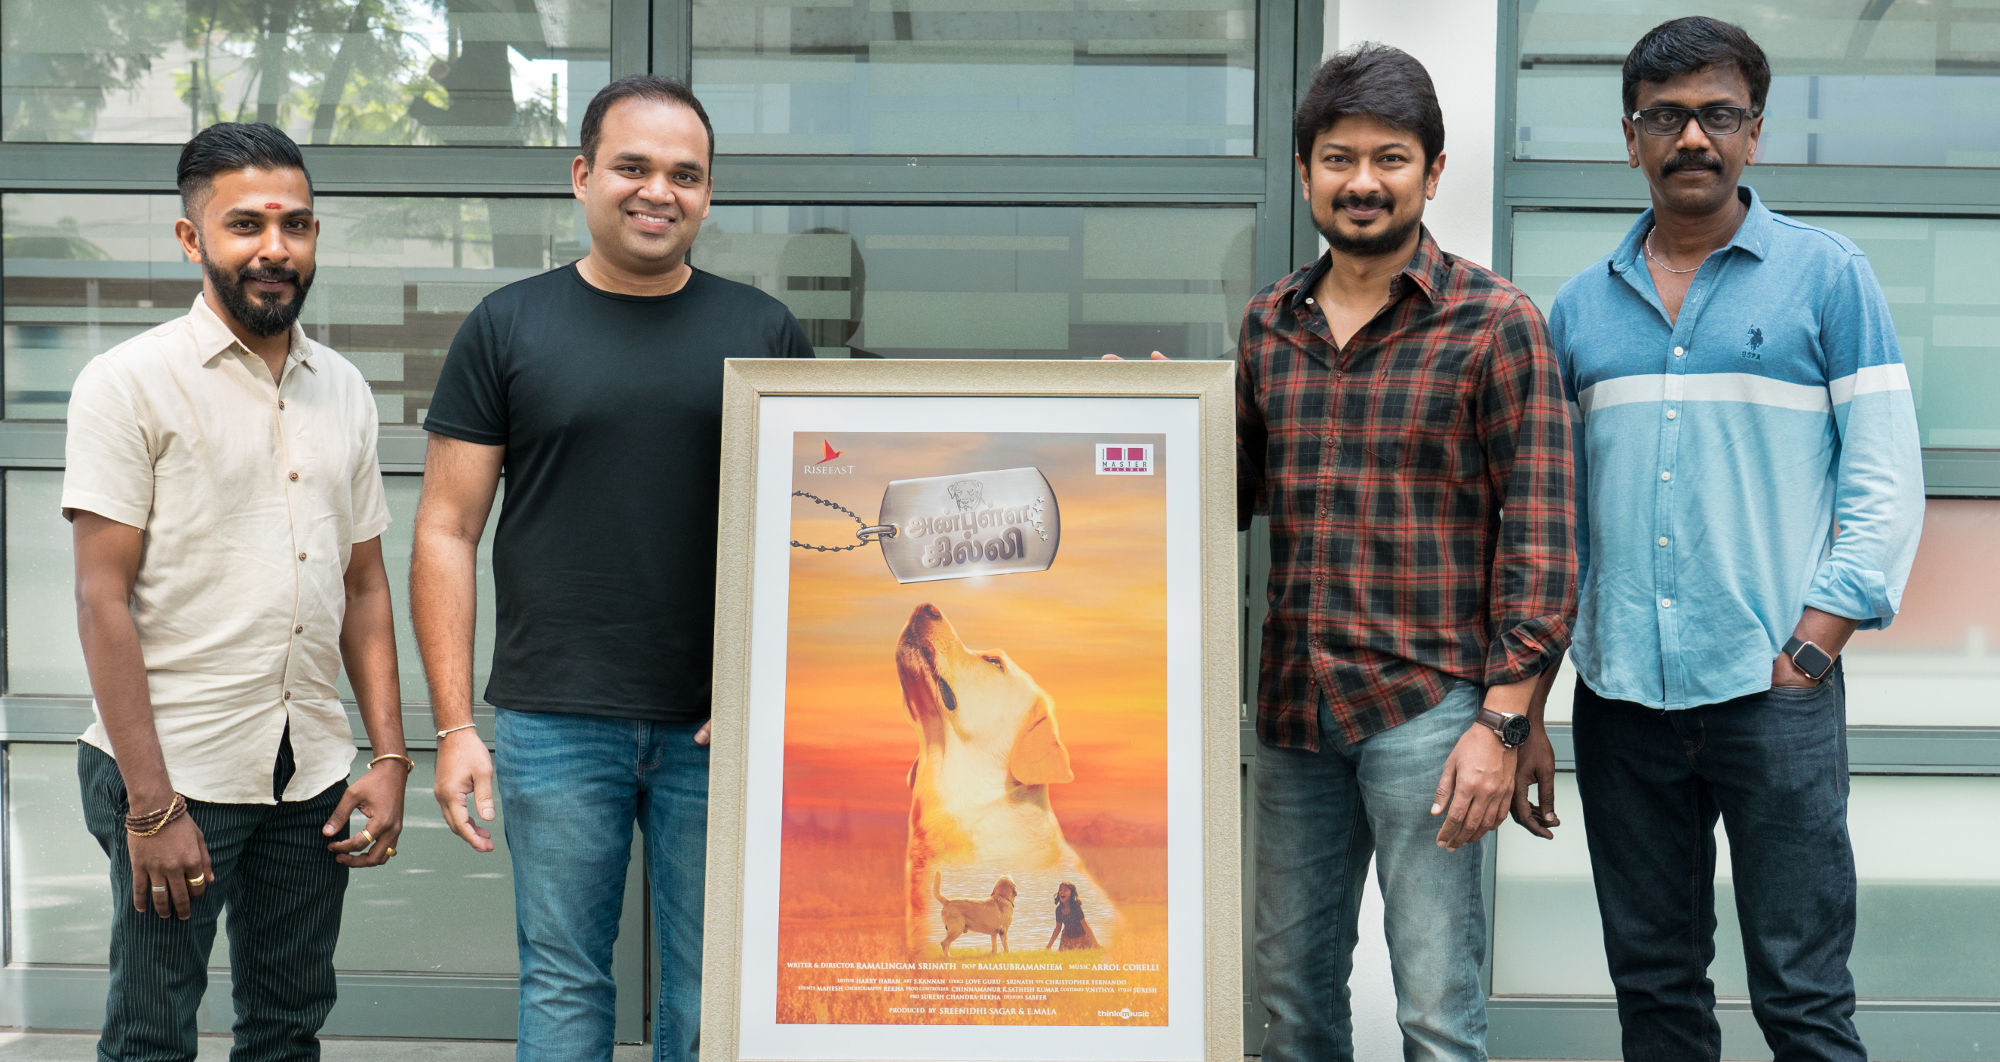 showers of praises for 'Anbulla Ghilli' first look